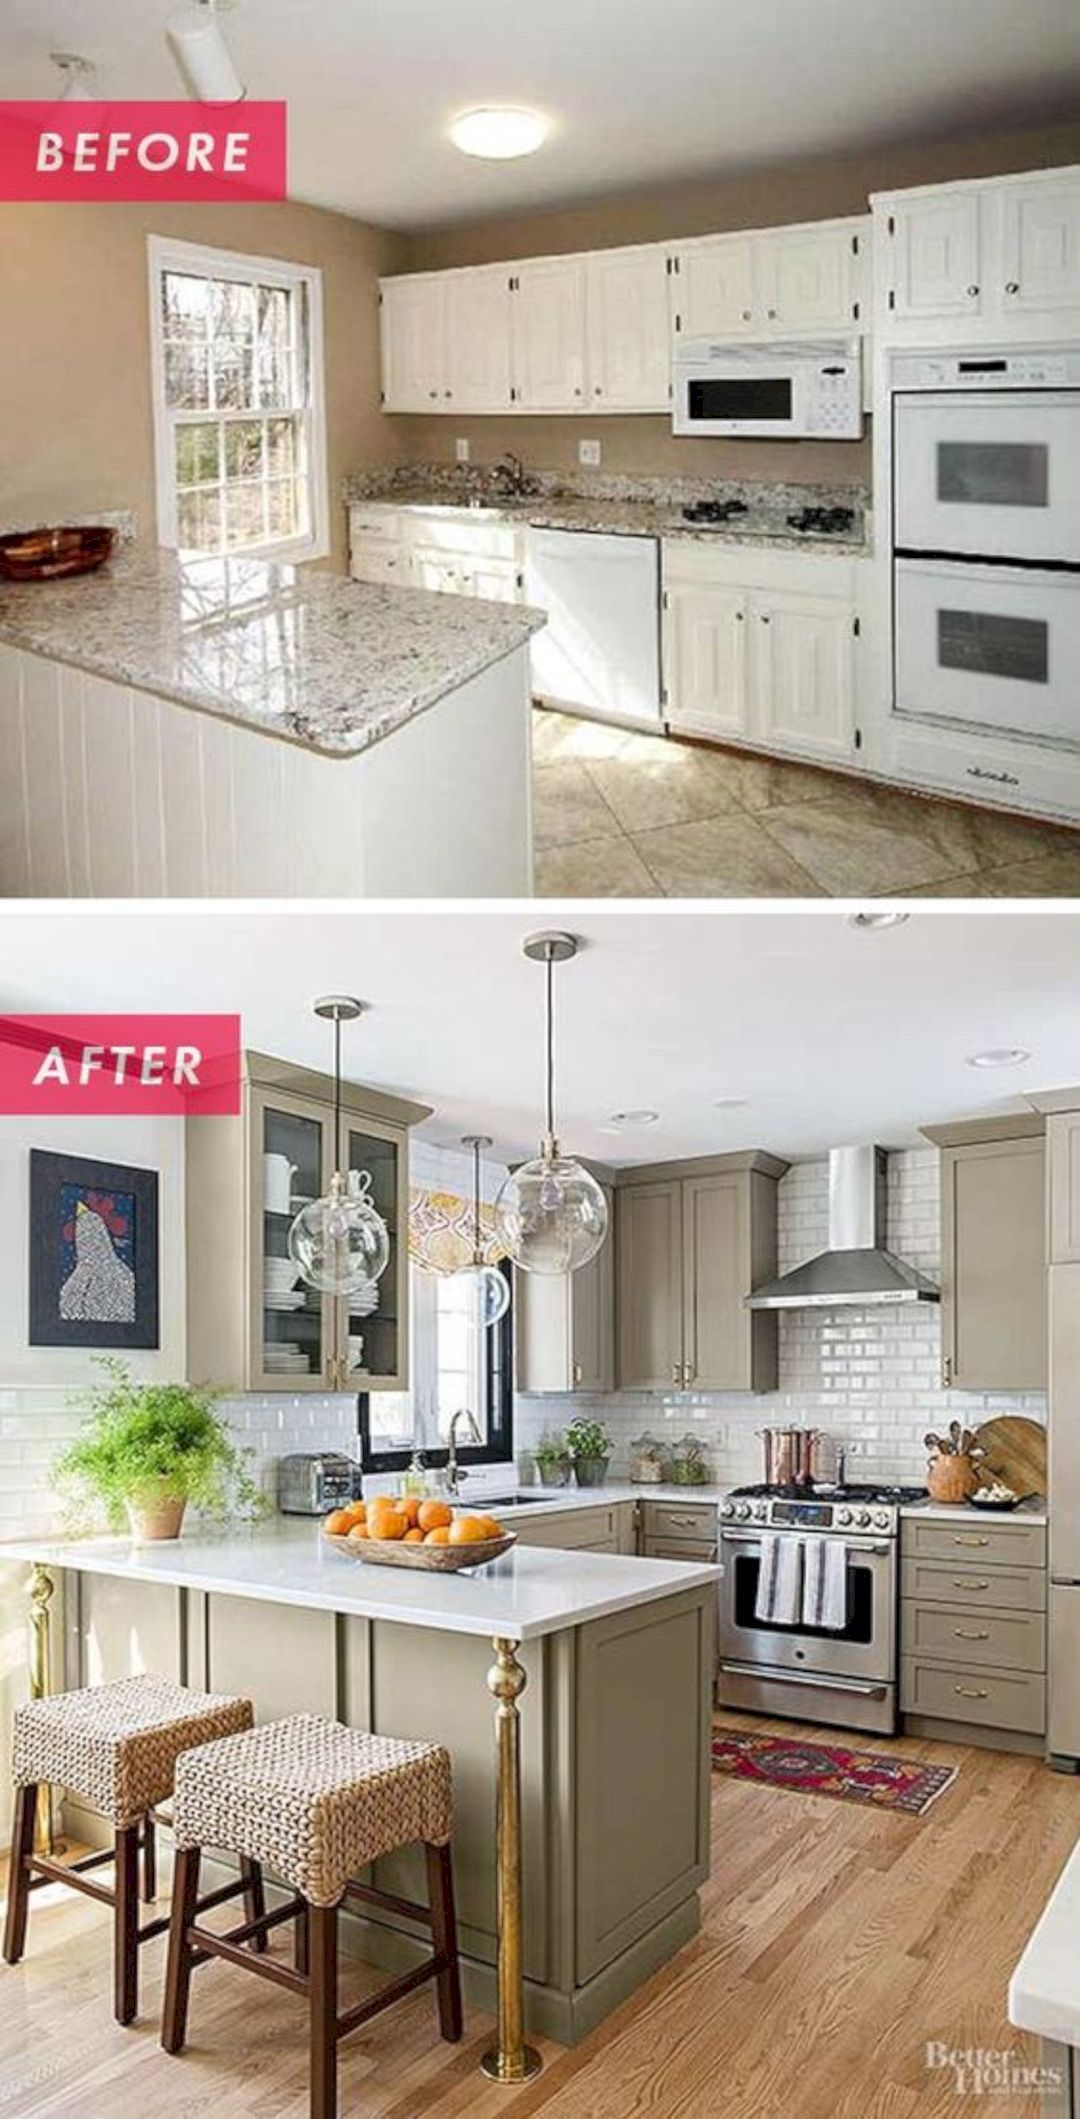 Werkhaus Renovation Of A Town House With A Strong Interior Design Small Kitchen Renovations Cheap Kitchen Remodel Kitchen Remodel